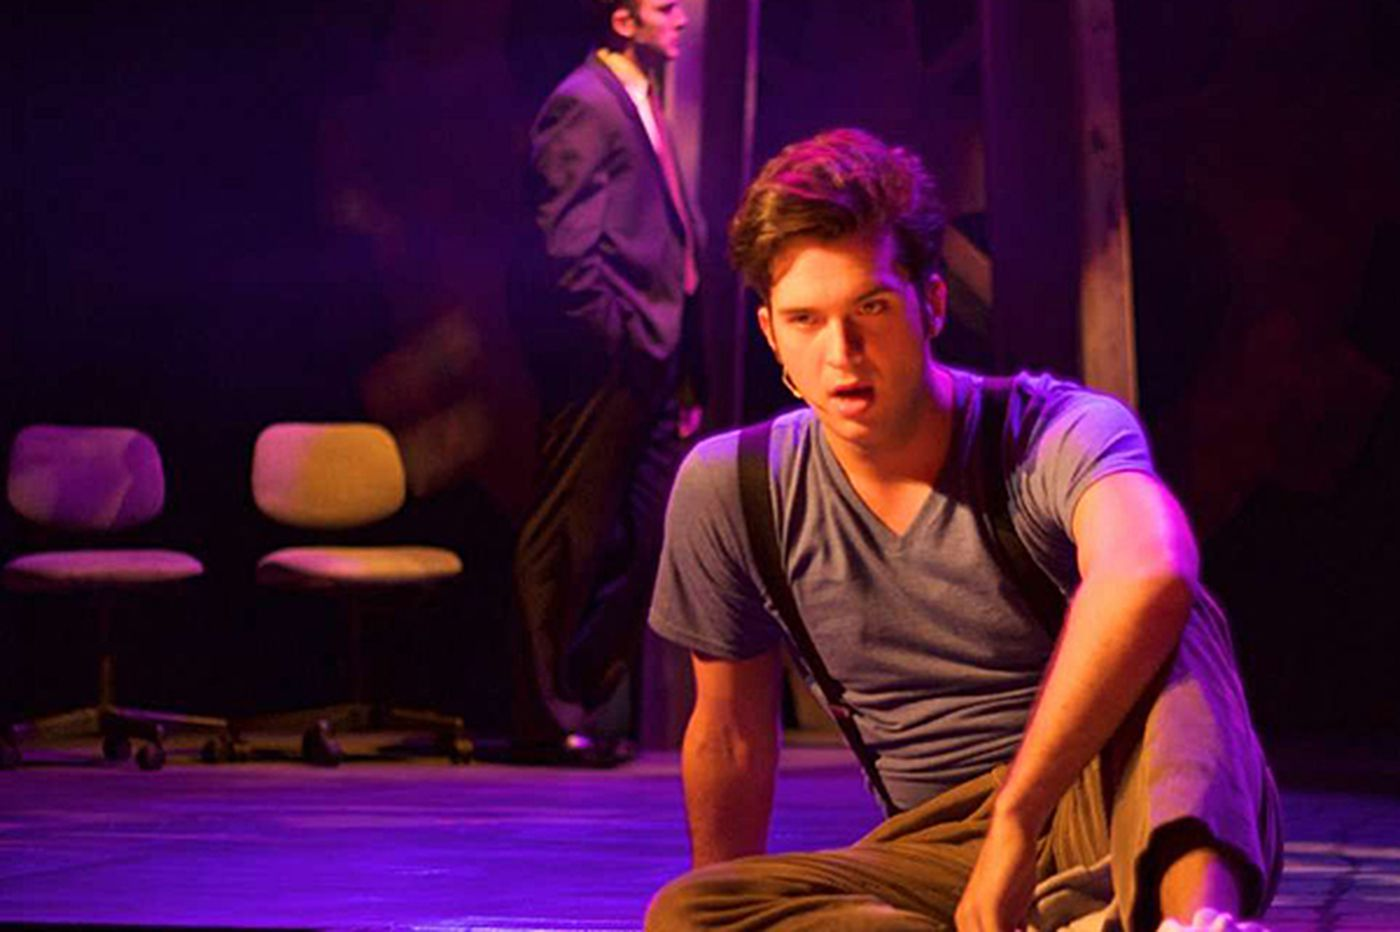 Review: The show that set the stage for 'Rent'